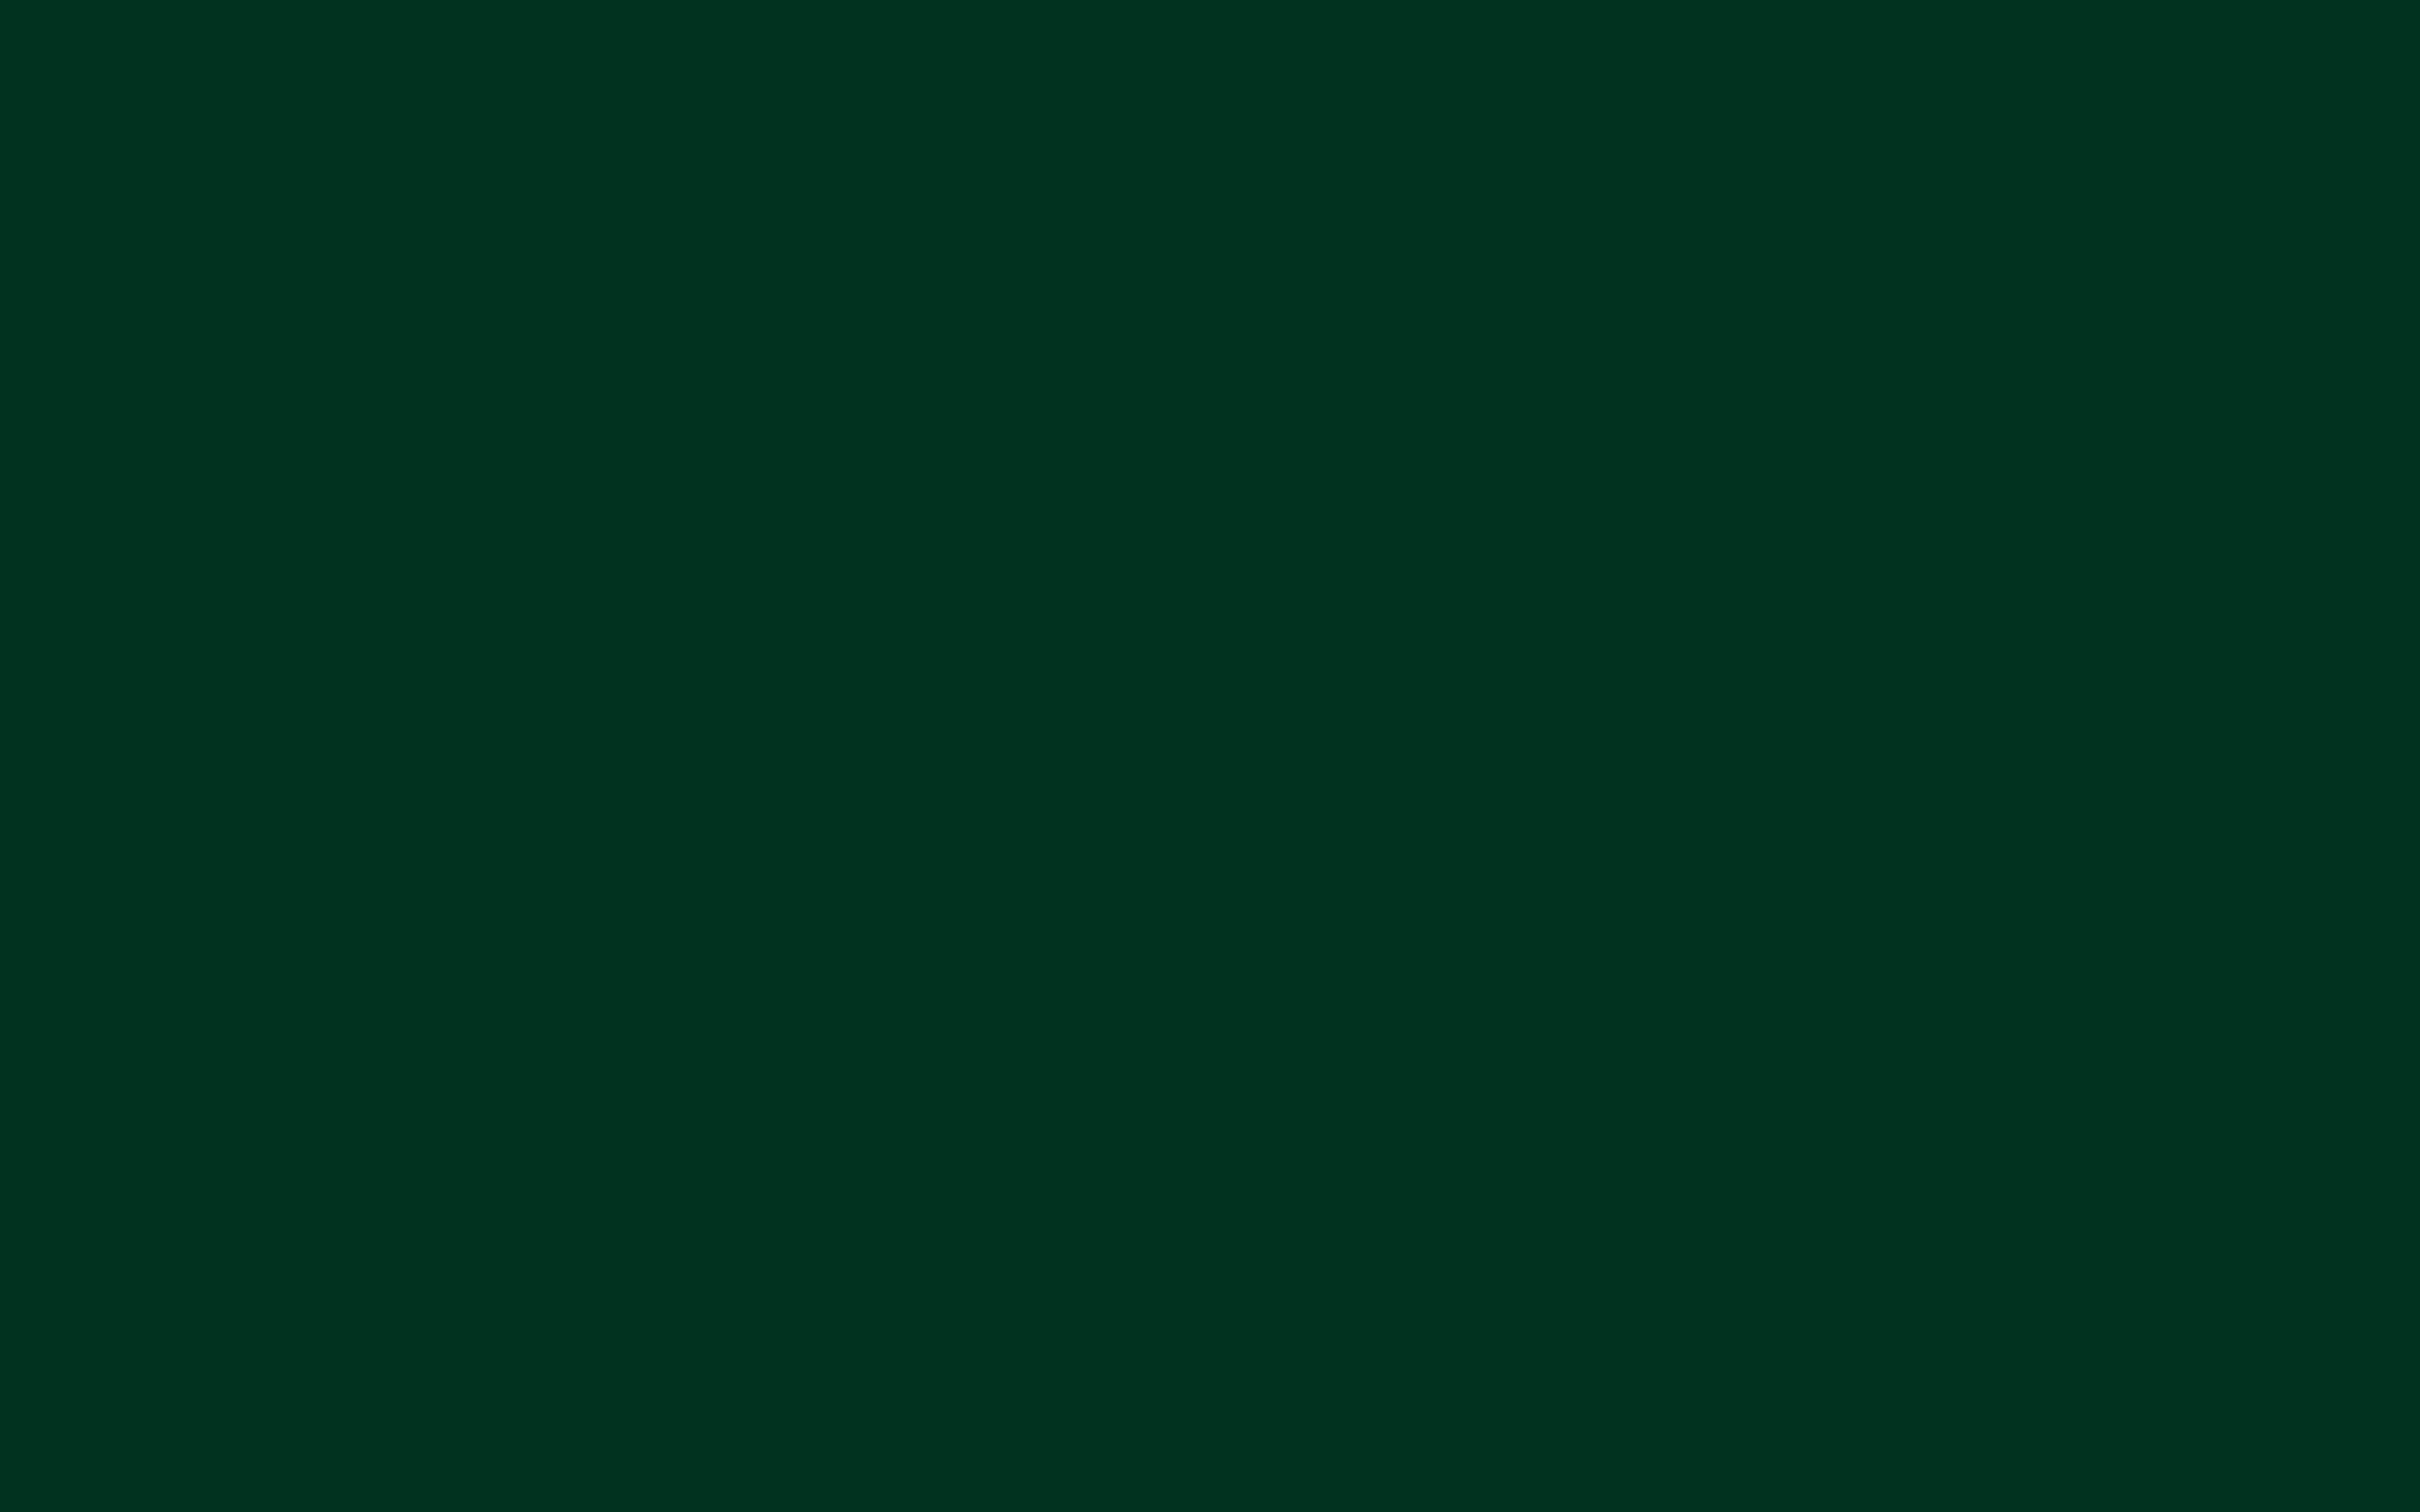 2560x1600 Dark Green Solid Color Background